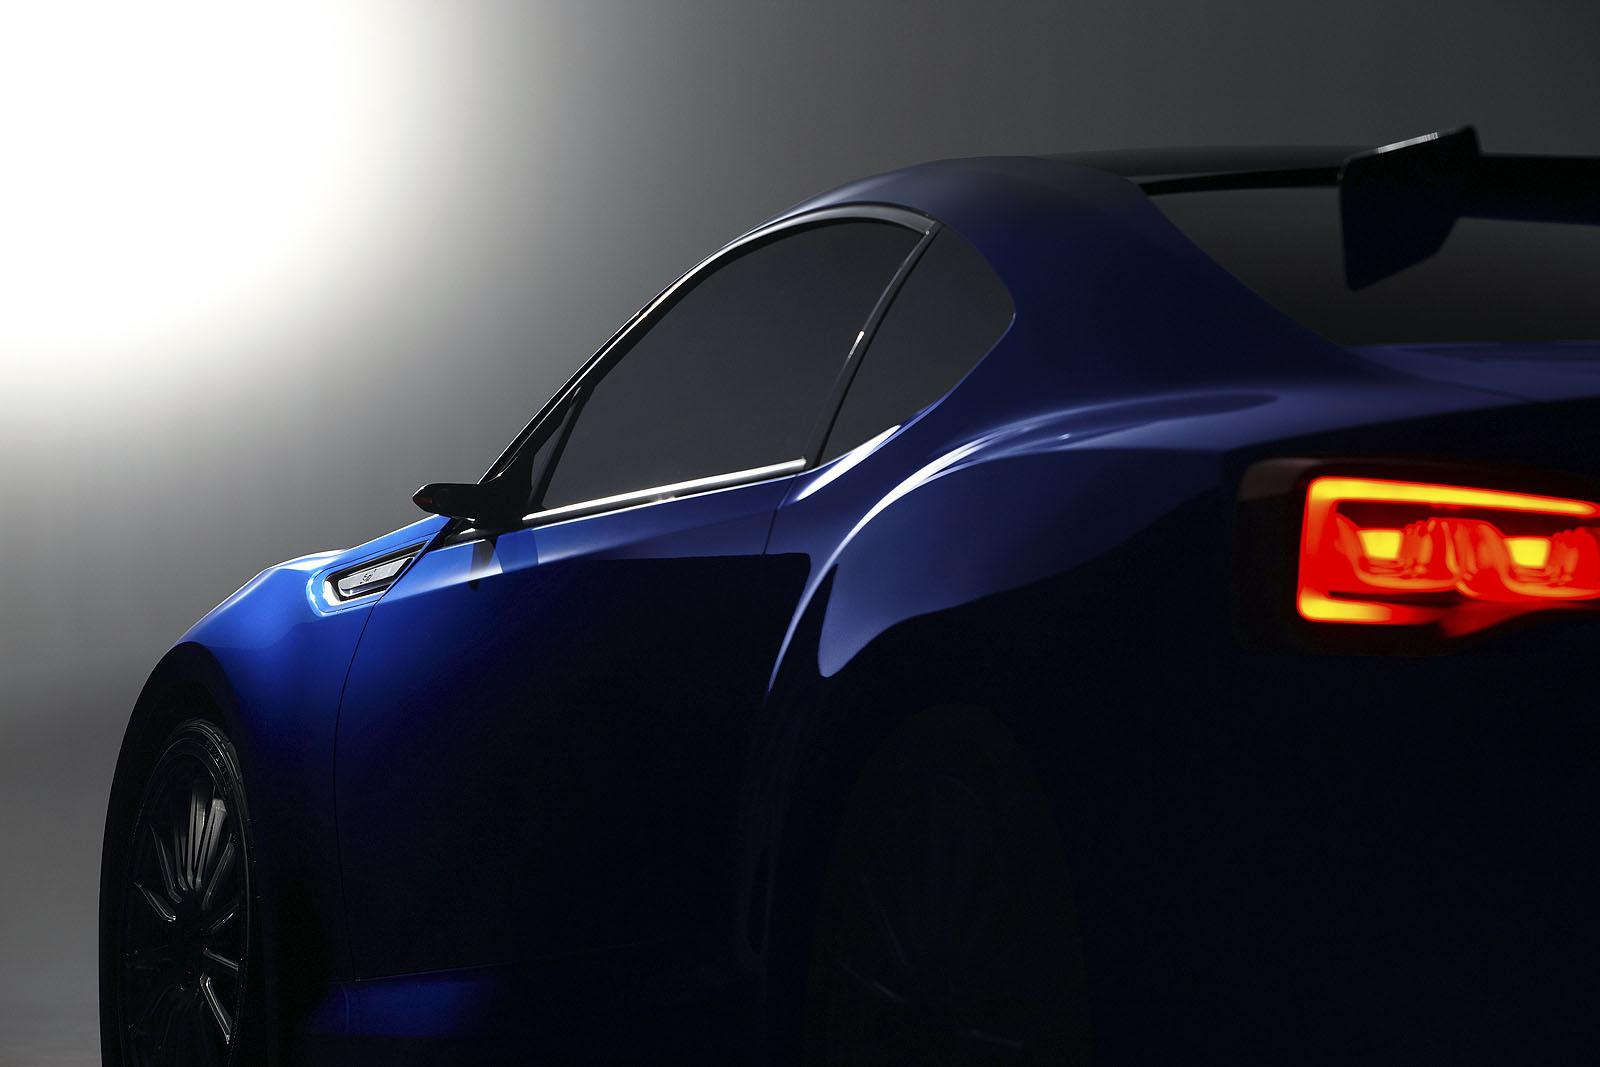 Subaru brz sti concept subaru brz sti concept vanachro Image collections